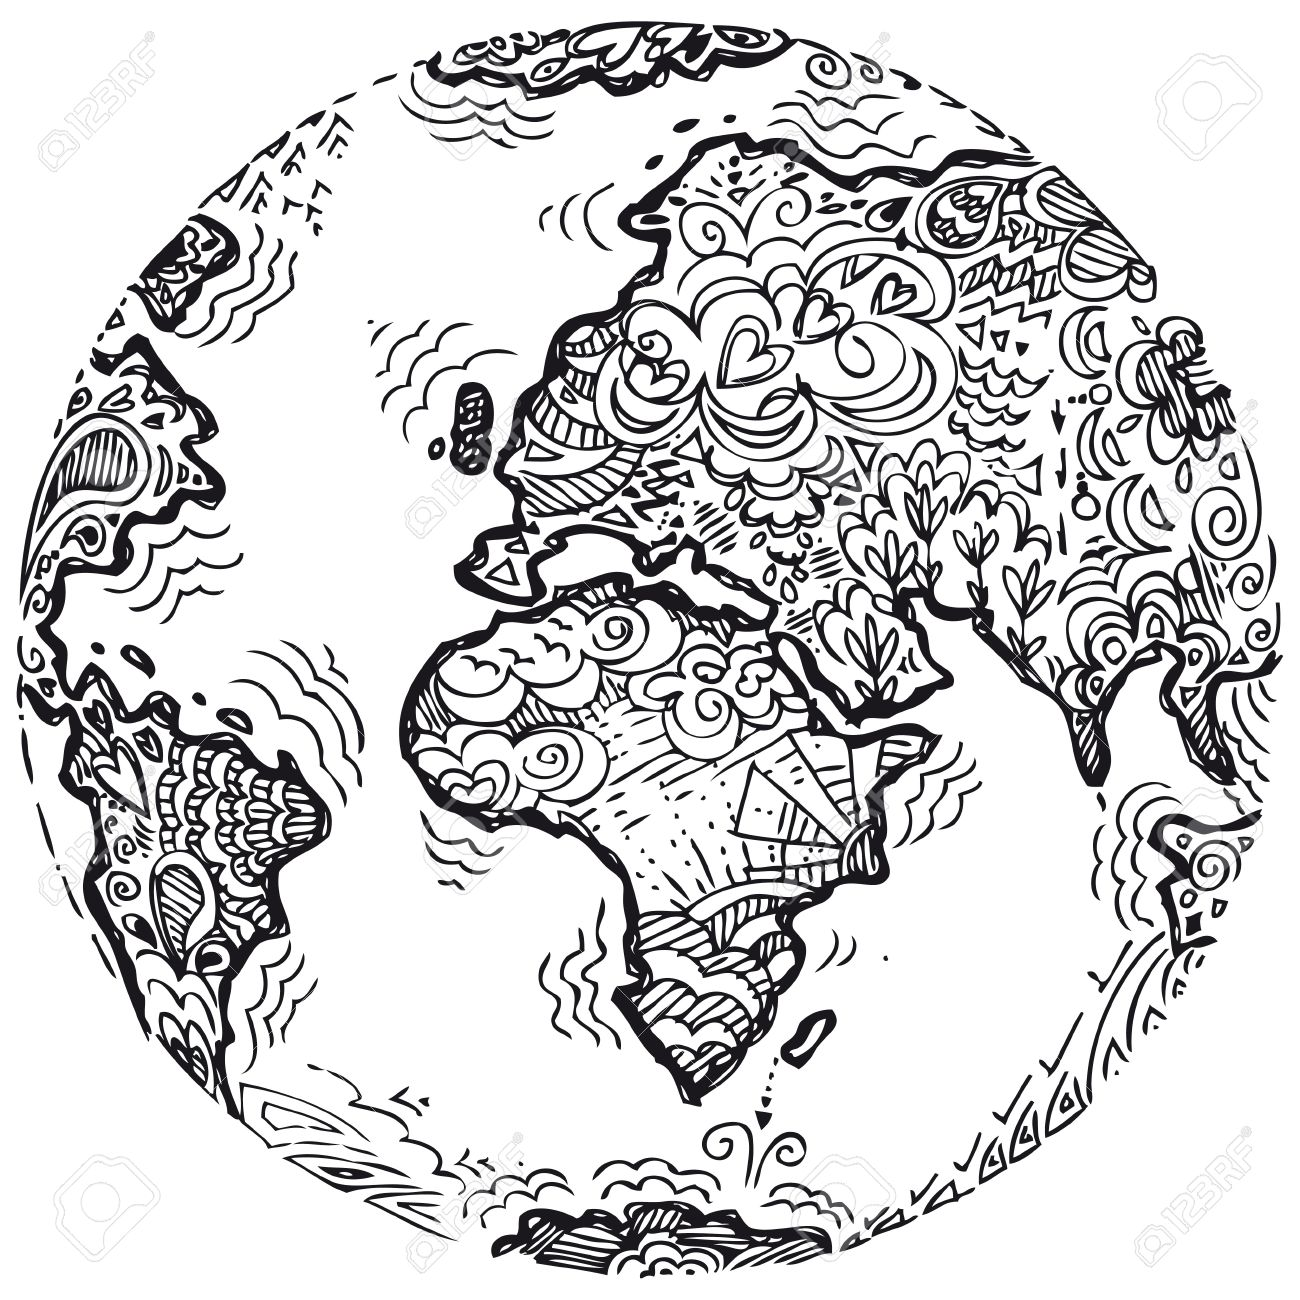 planet earth sketched doodle royalty free cliparts vectors and